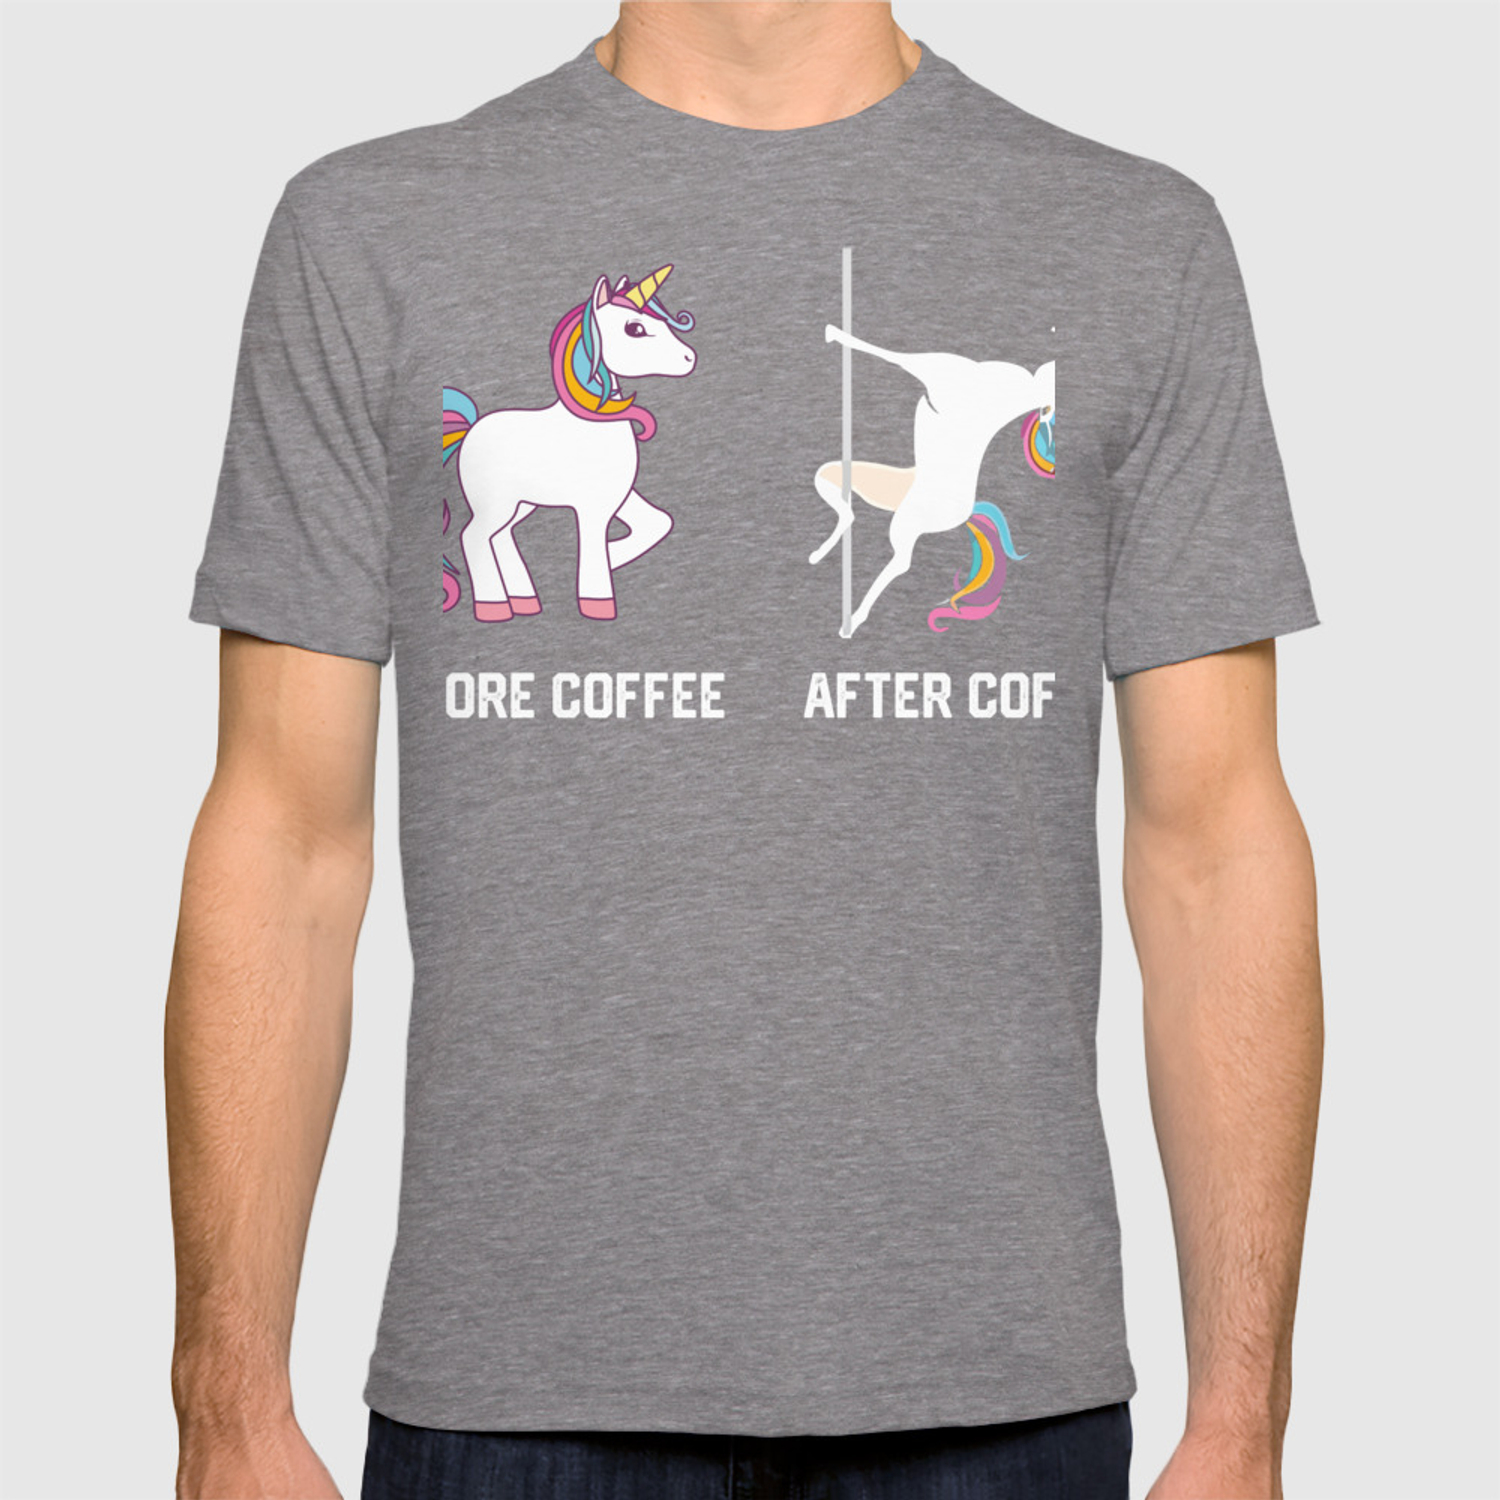 395e10a2 Funny Unicorn Before Coffee After Coffee T-shirts Gift T-shirt by mrsmitful  | Society6